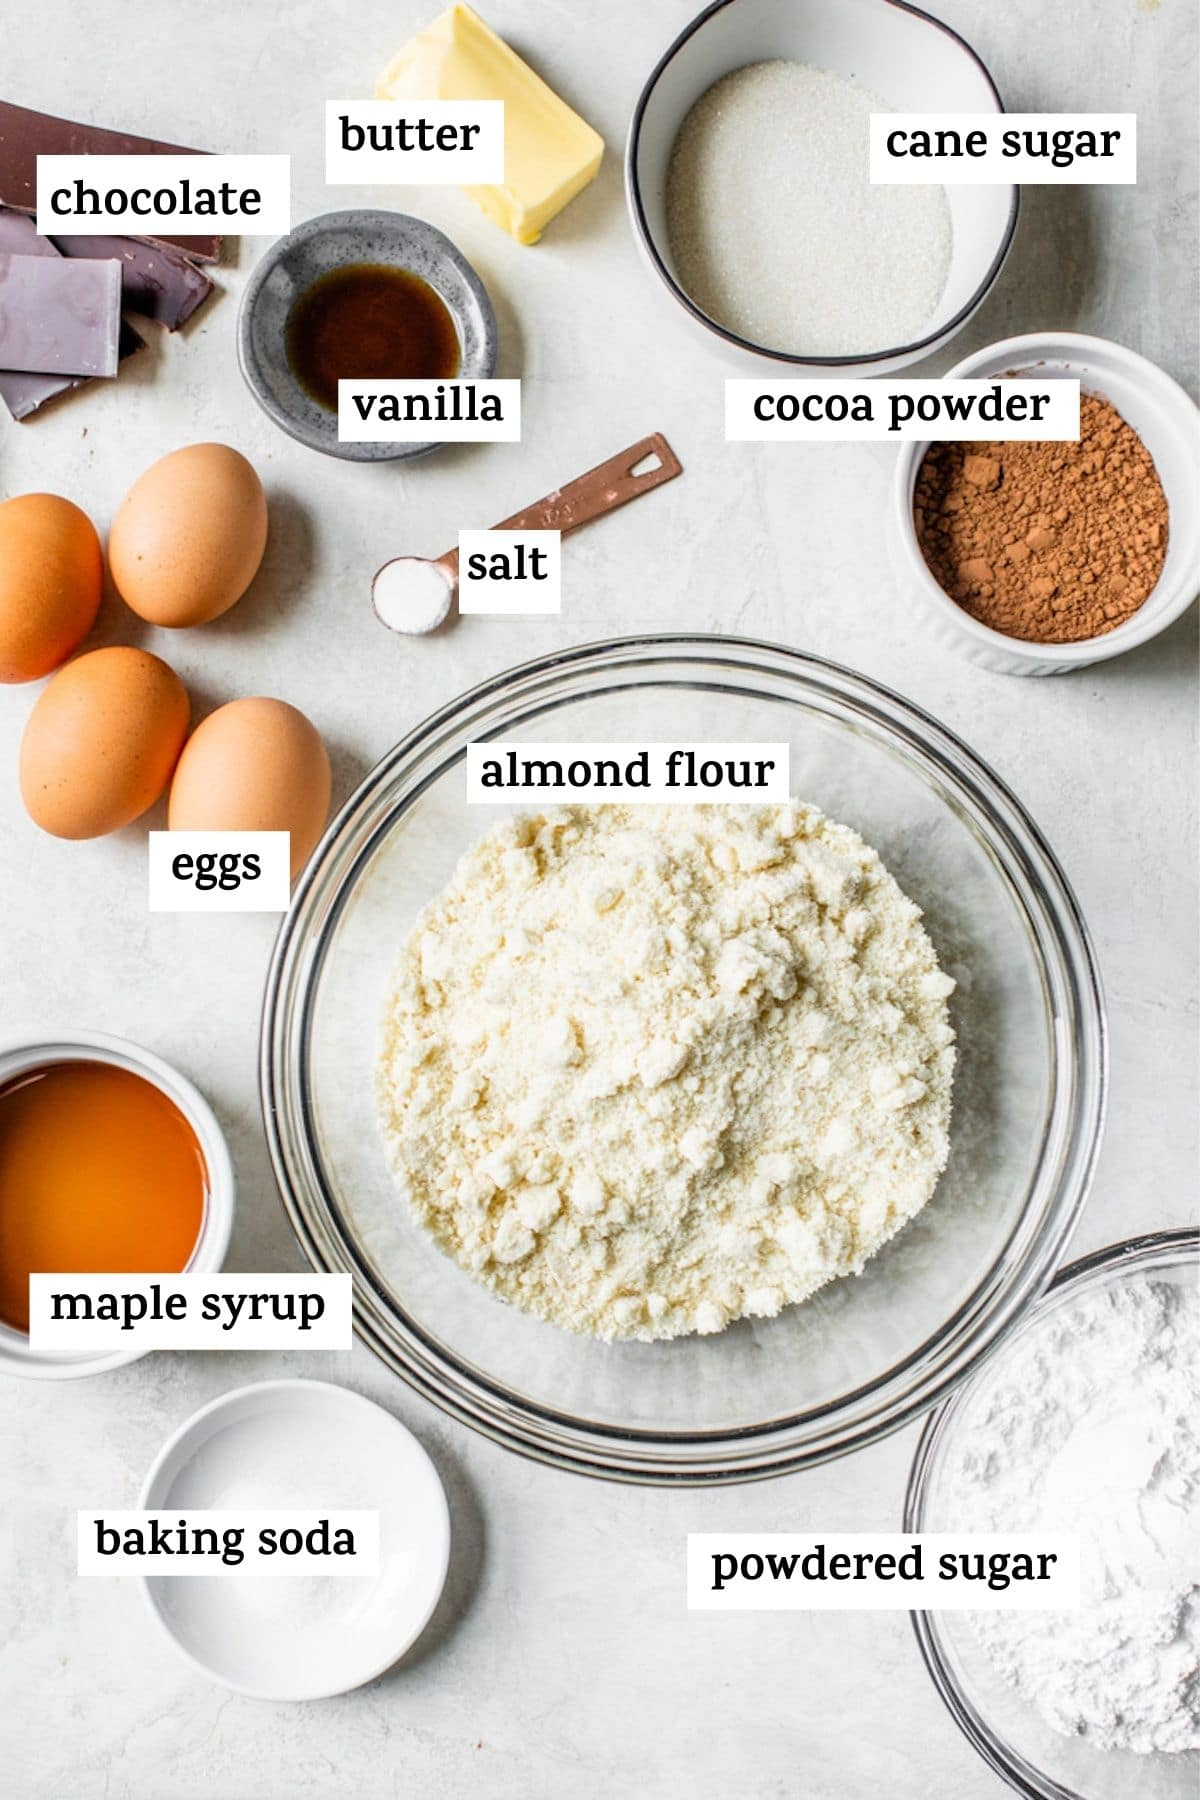 cake ingredients with text over them